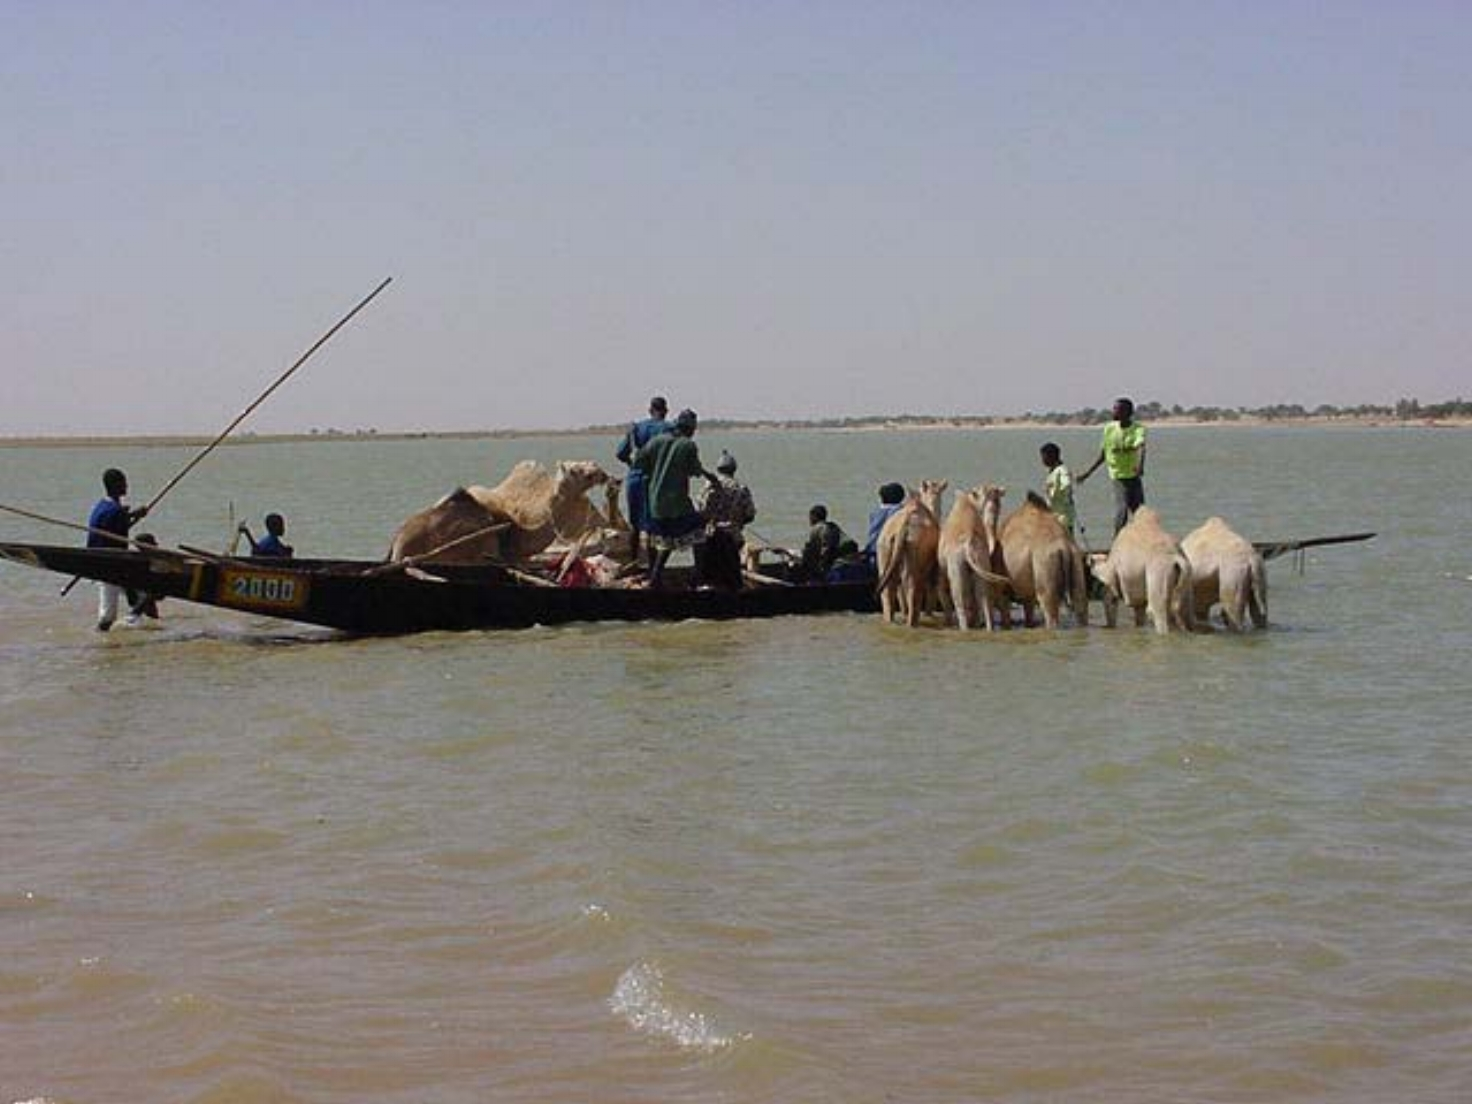 Herding camels across the river